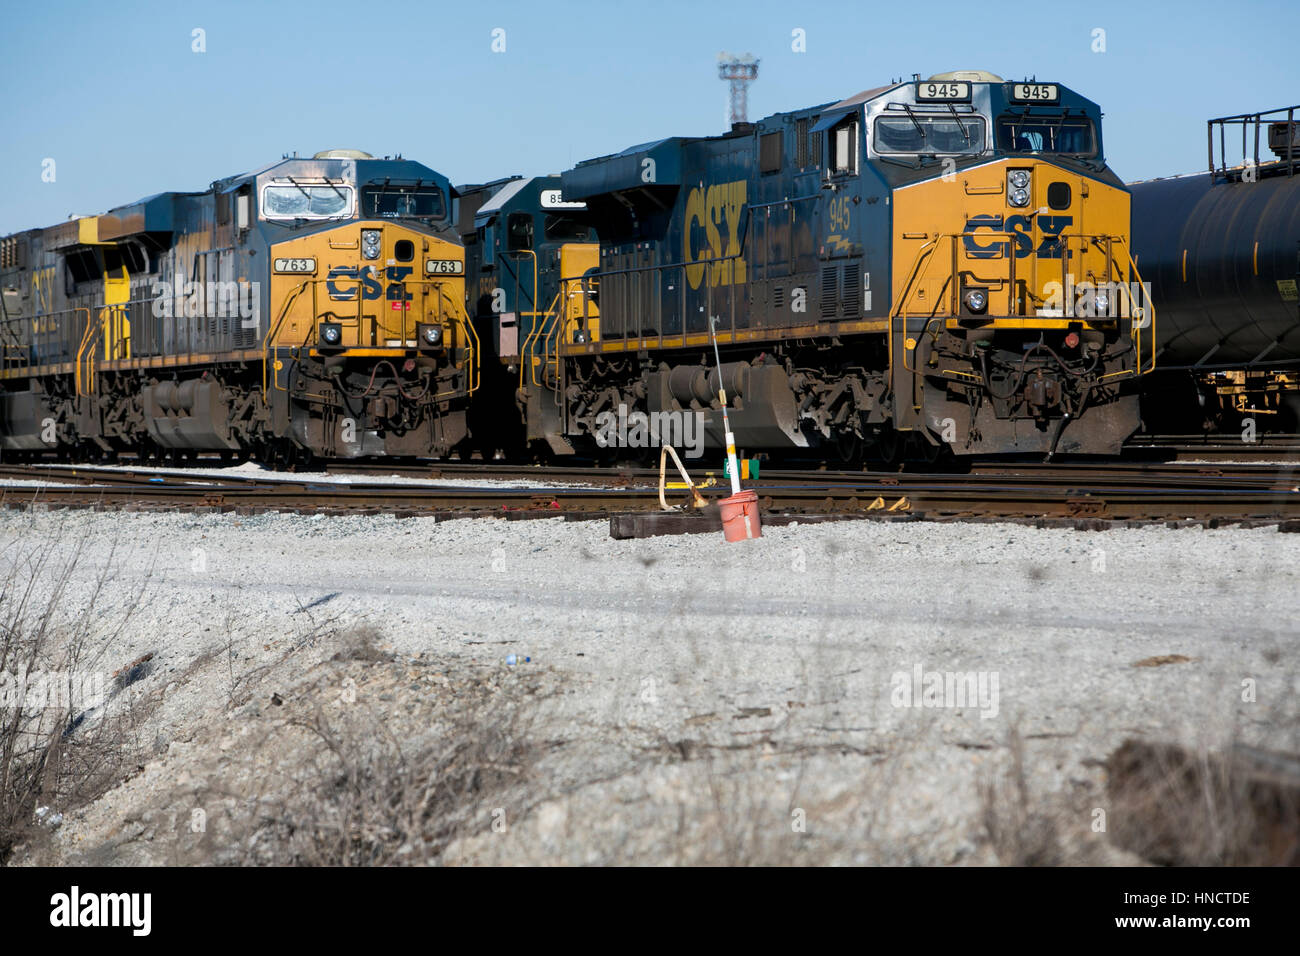 Csx Locomotives And Train Cars On A Railroad Siding In